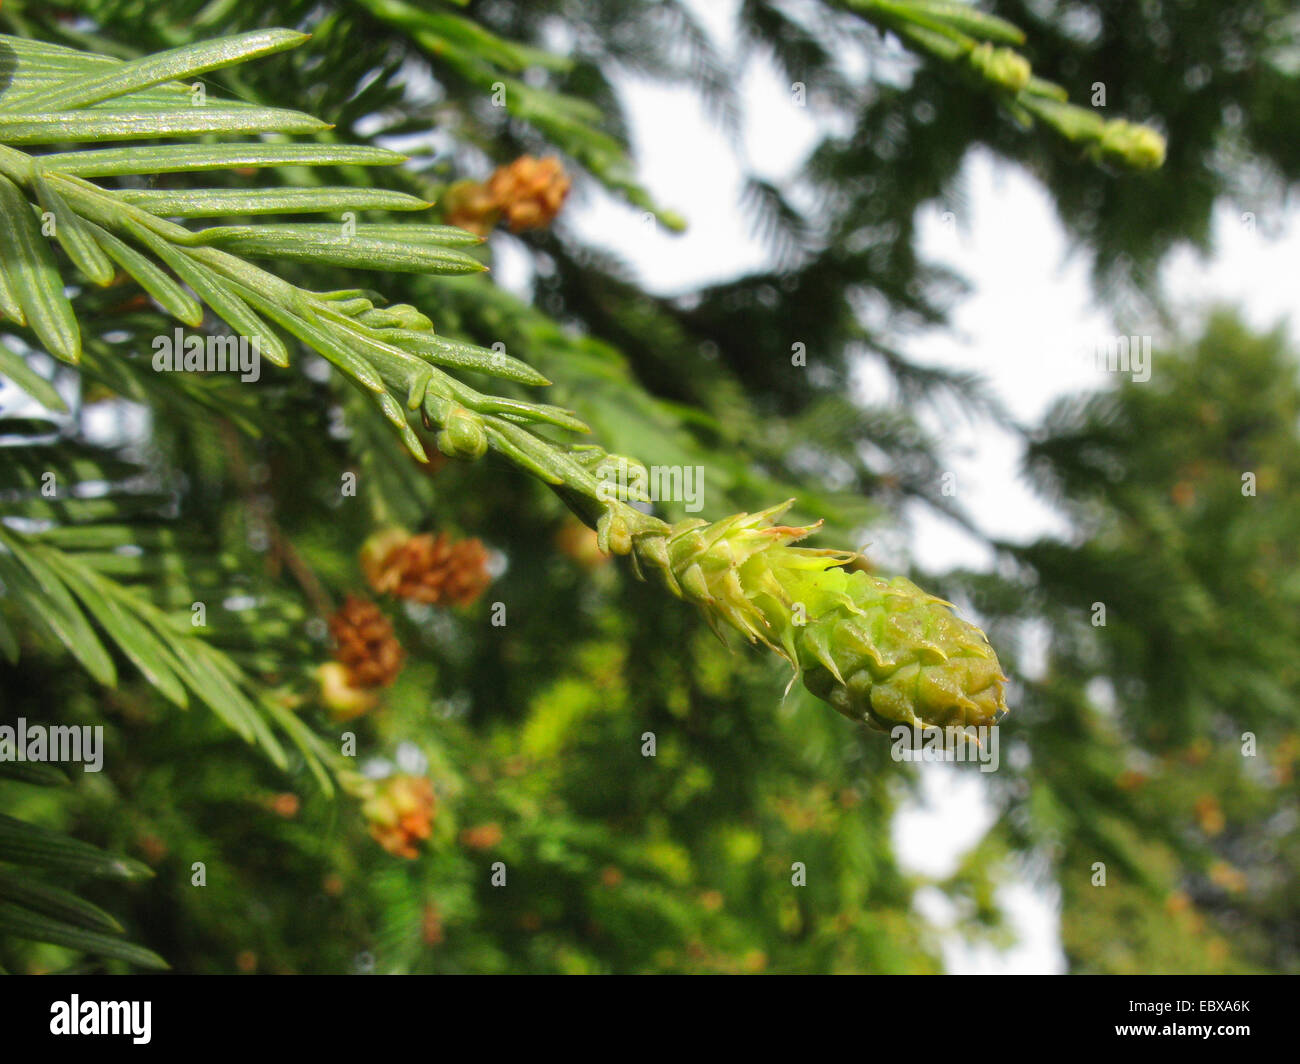 California redwood, coast redwood (Sequoia sempervirens), branch with young cone - Stock Image